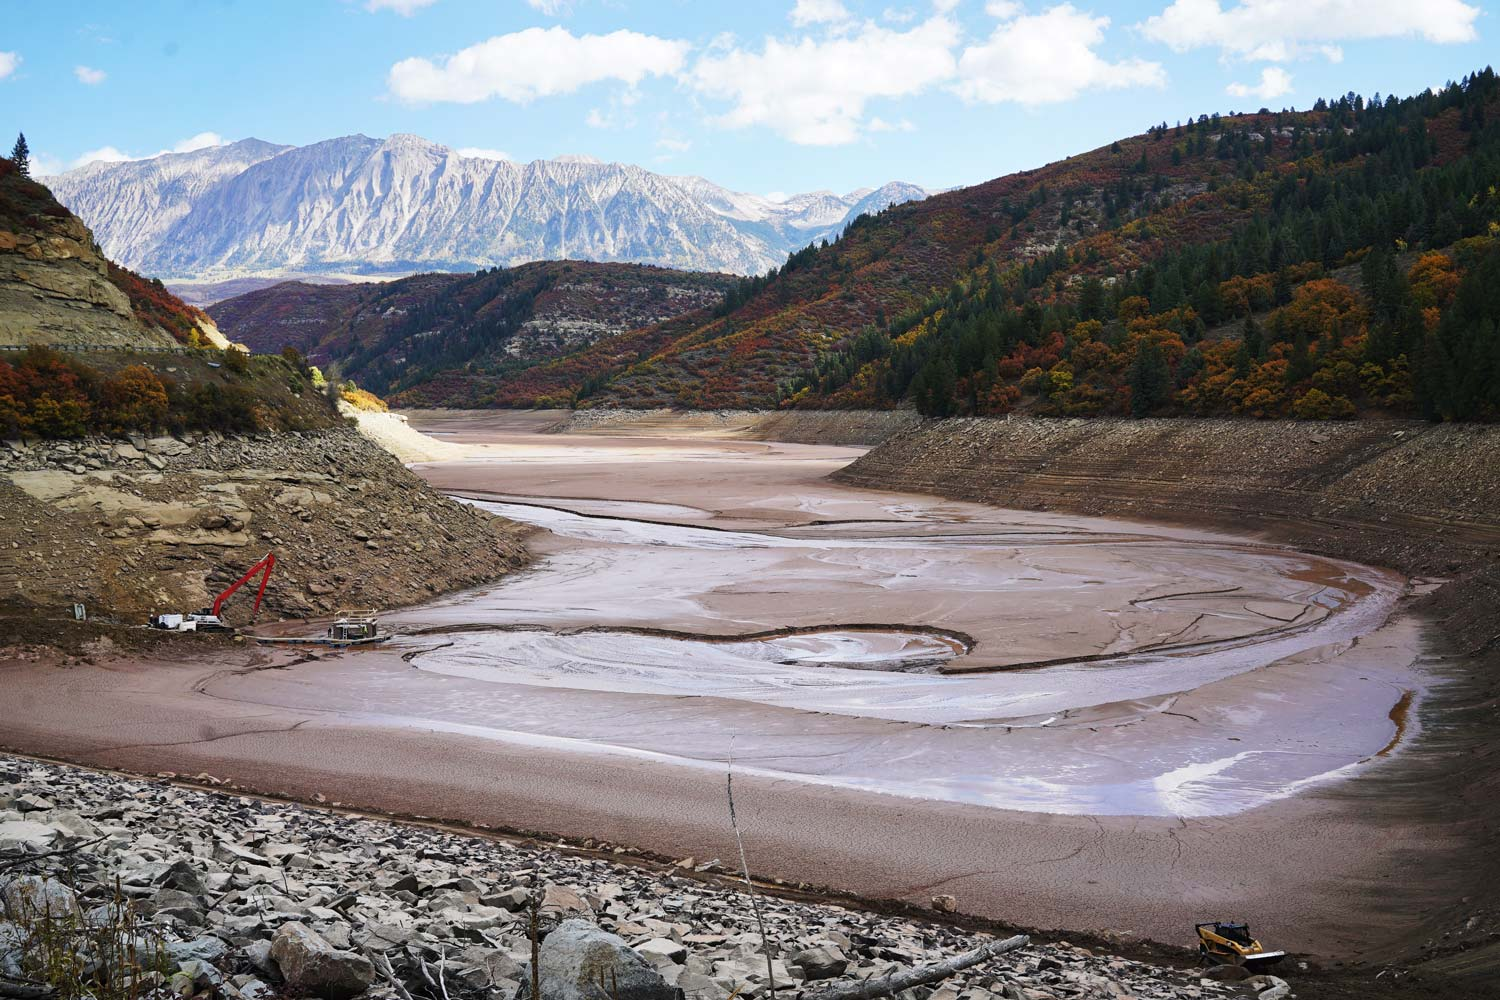 At the Paonia Dam, years of mud and debris have built up, creating a thick clay that is filling up the reservoir. [Courtesy image]